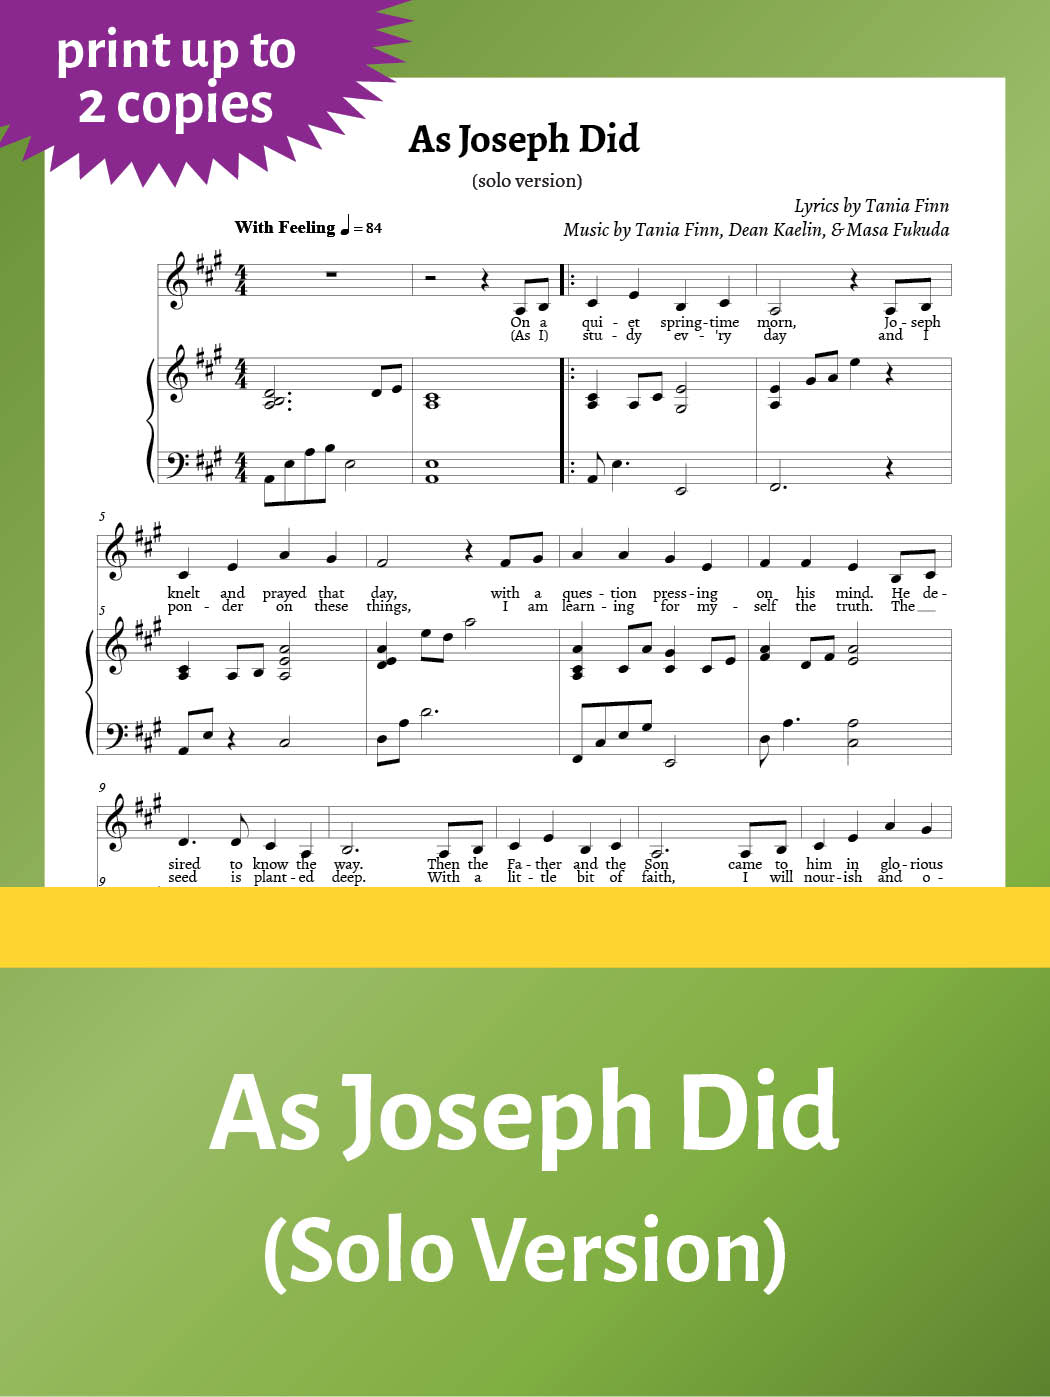 As Joseph Did – Sheet Music – solo – up to 2 copies